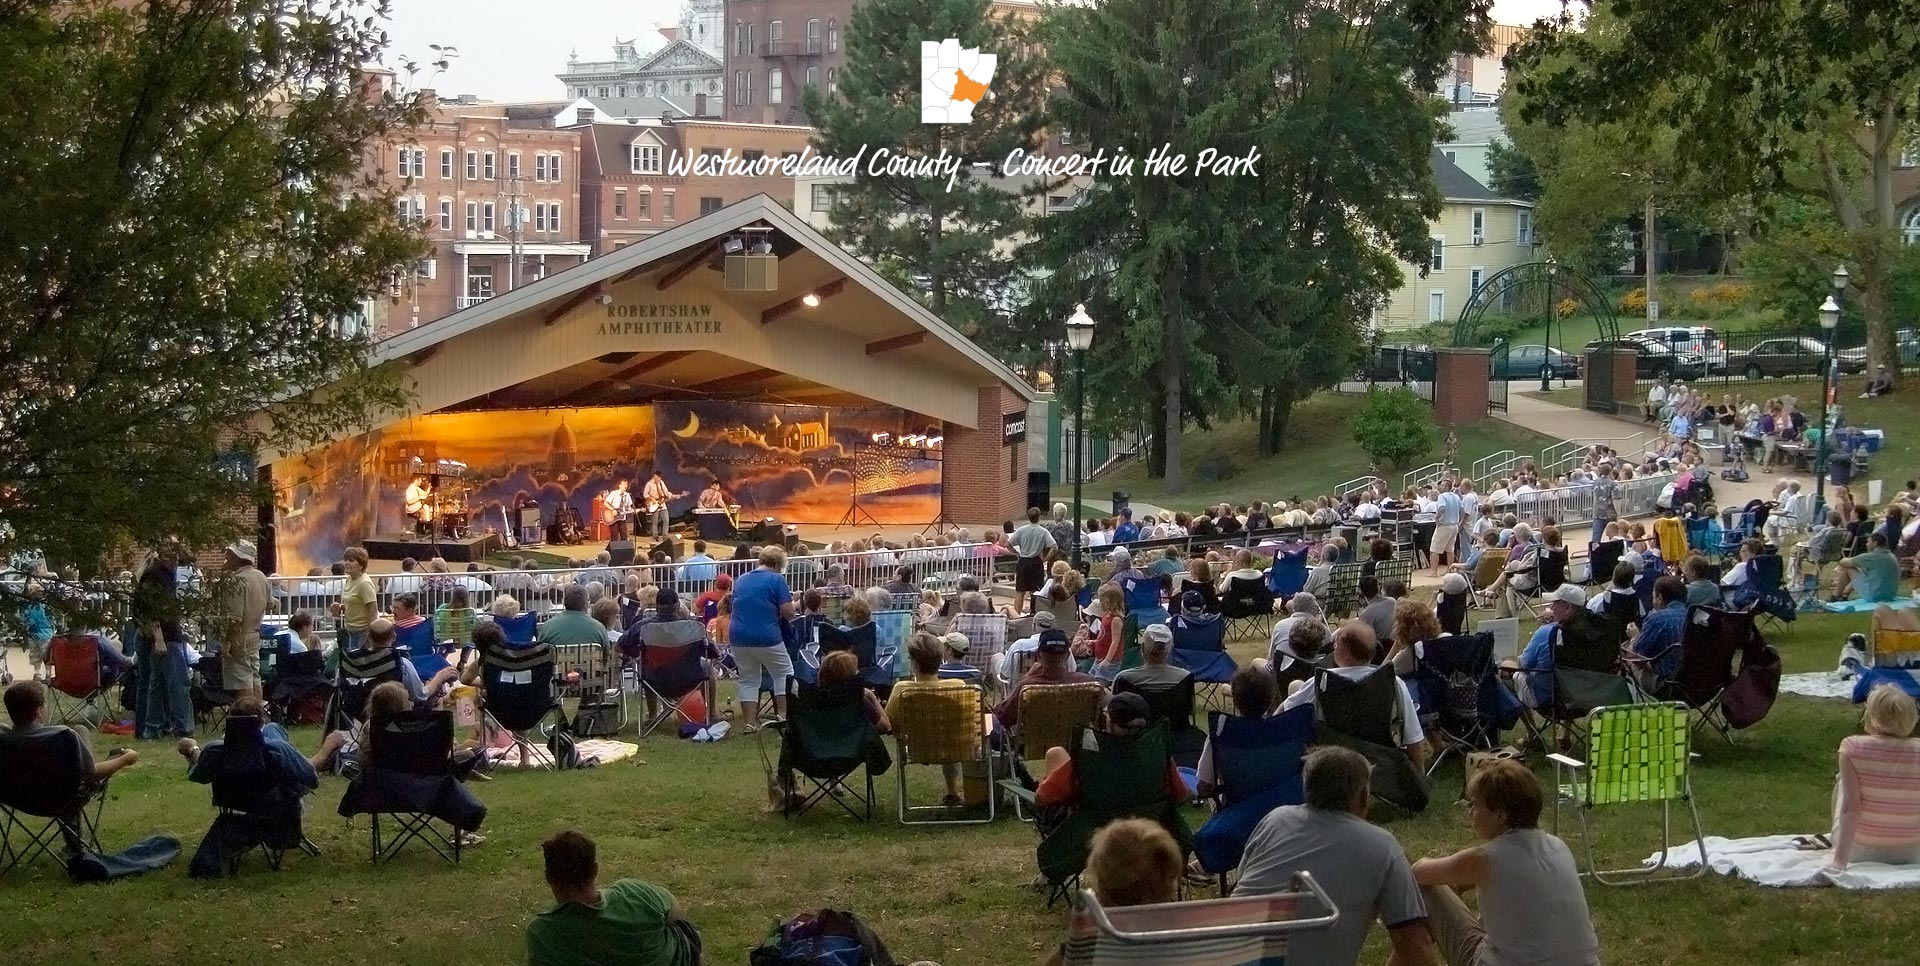 Westmoreland County – Concert in the Park